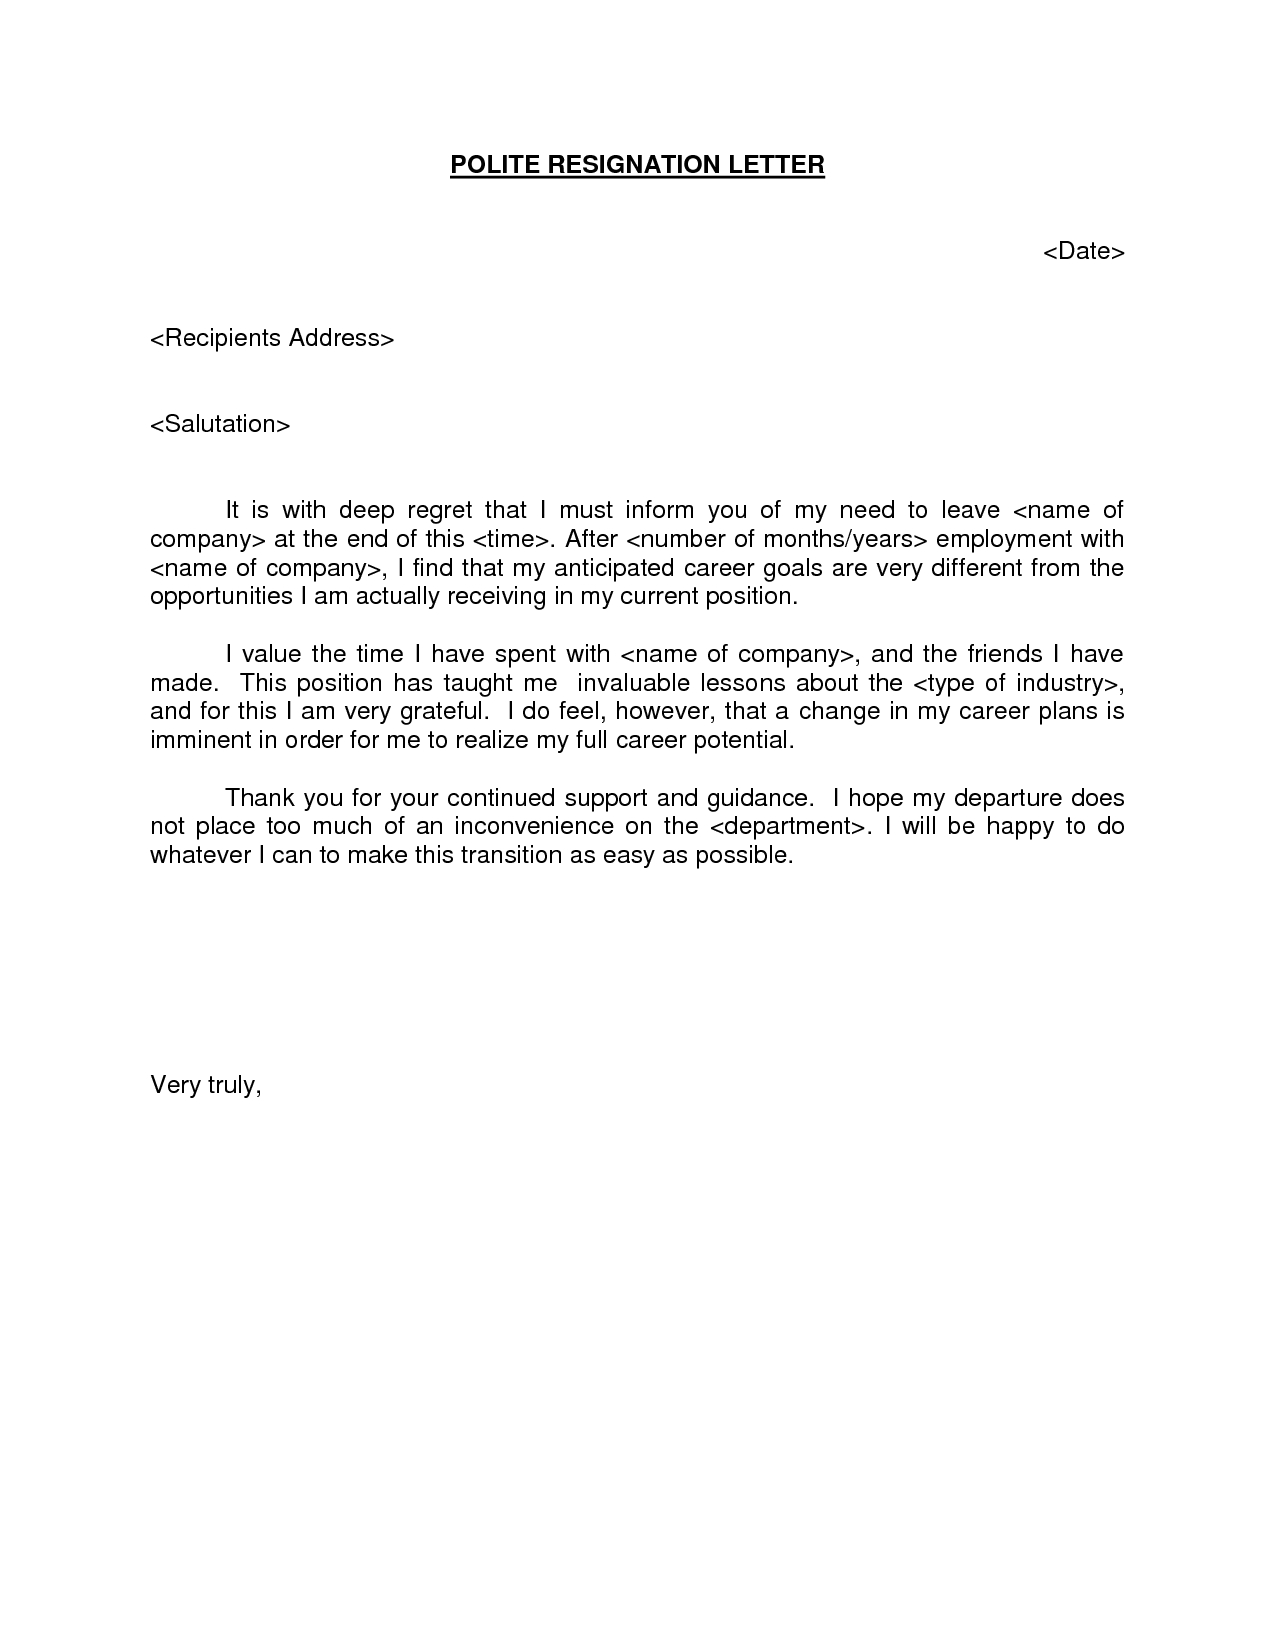 Resignation Letter Free Template Download - Polite Resignation Letter Bestdealformoneywriting A Letter